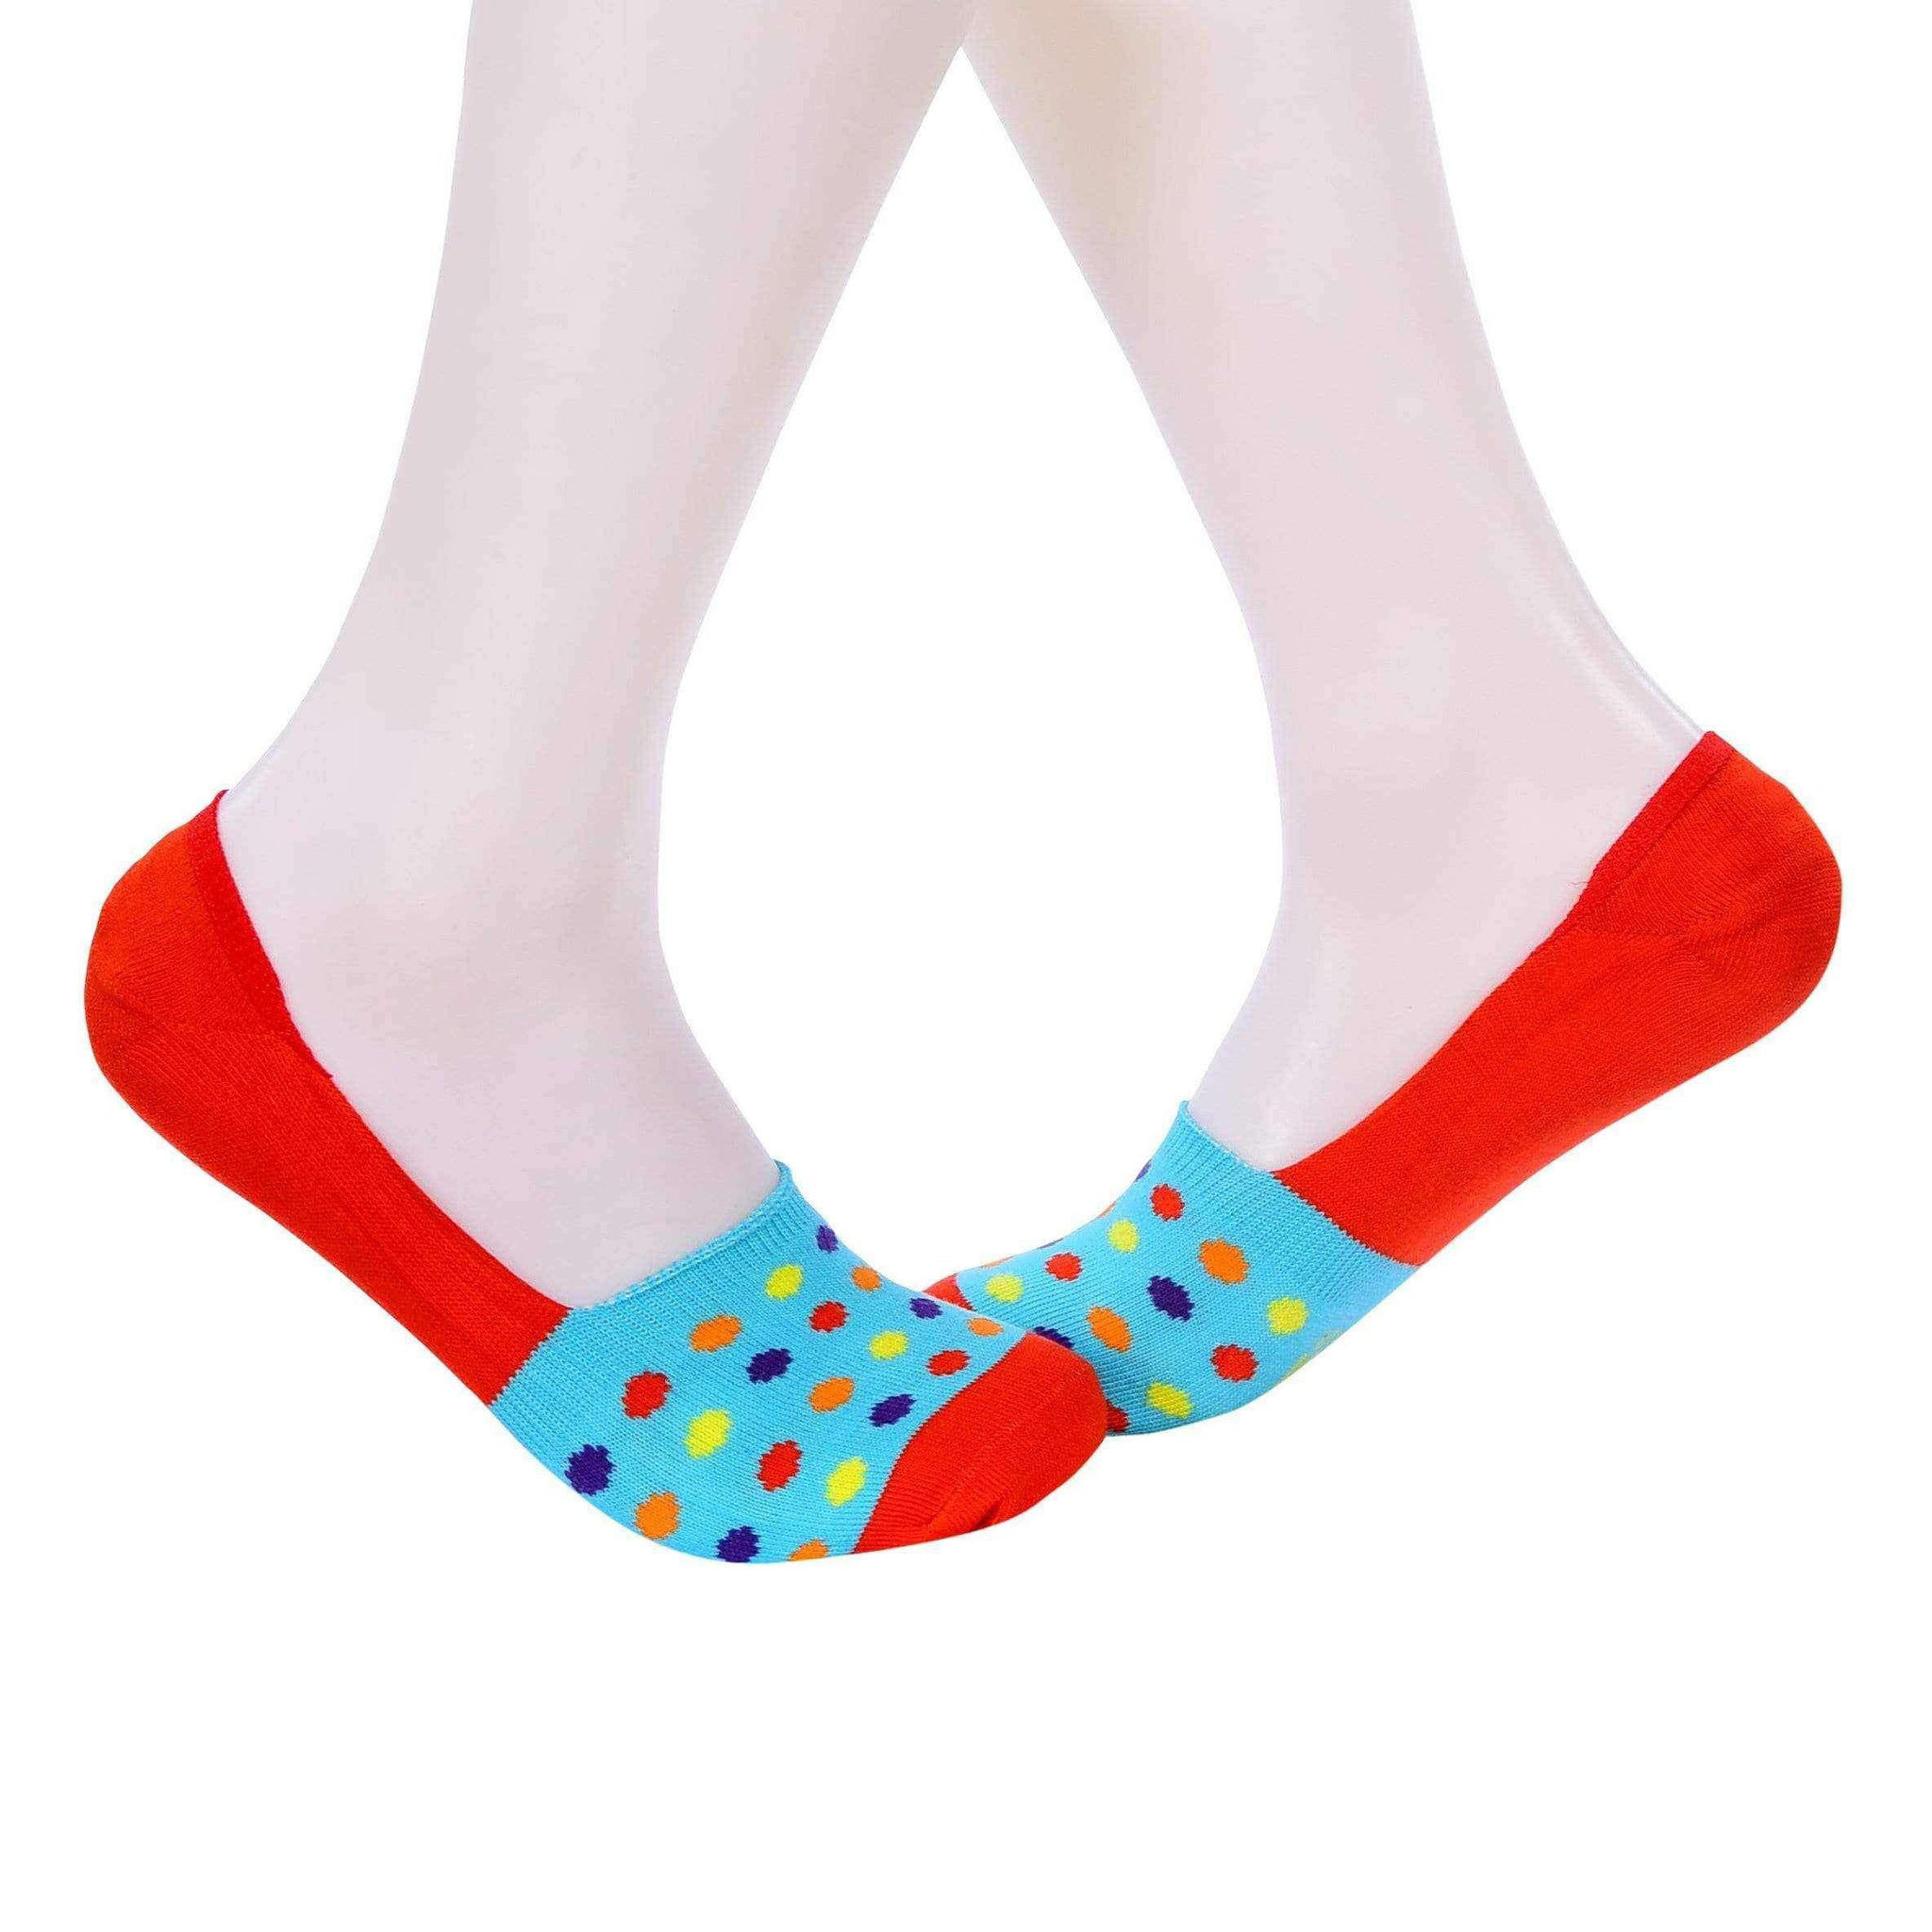 Small Polka Dots Invisible/Secret Socks - Light Blue - Tale Of Socks